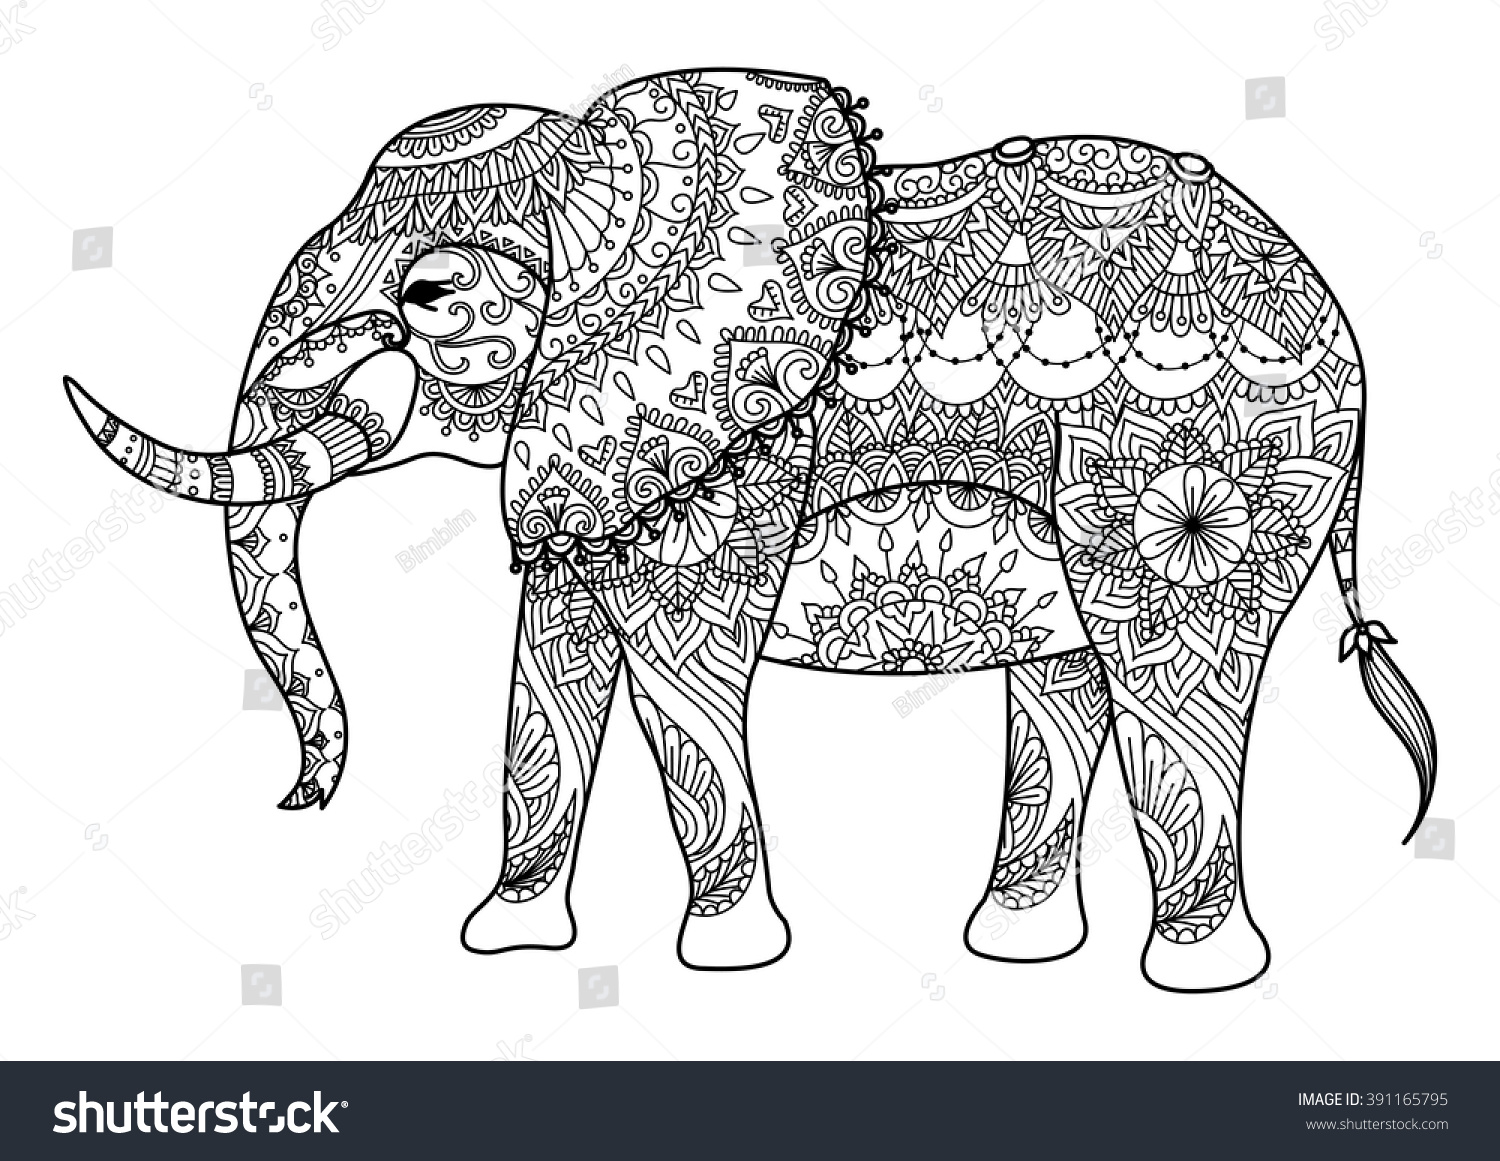 coloring pages line art designs - photo#26